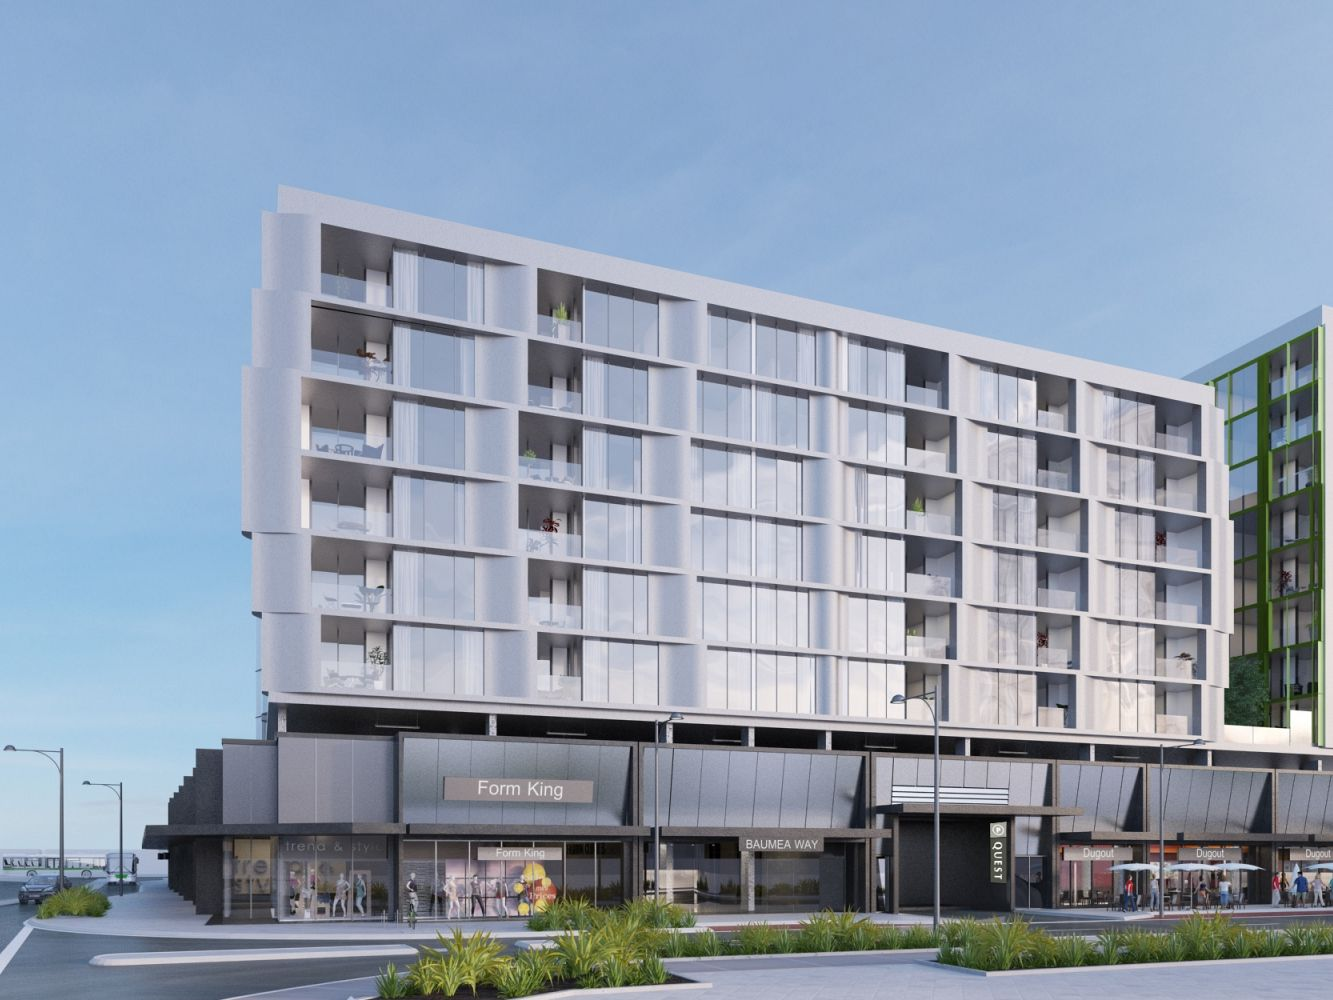 Leasehold of a Quest Apartment Hotel Development in Suburban Perth